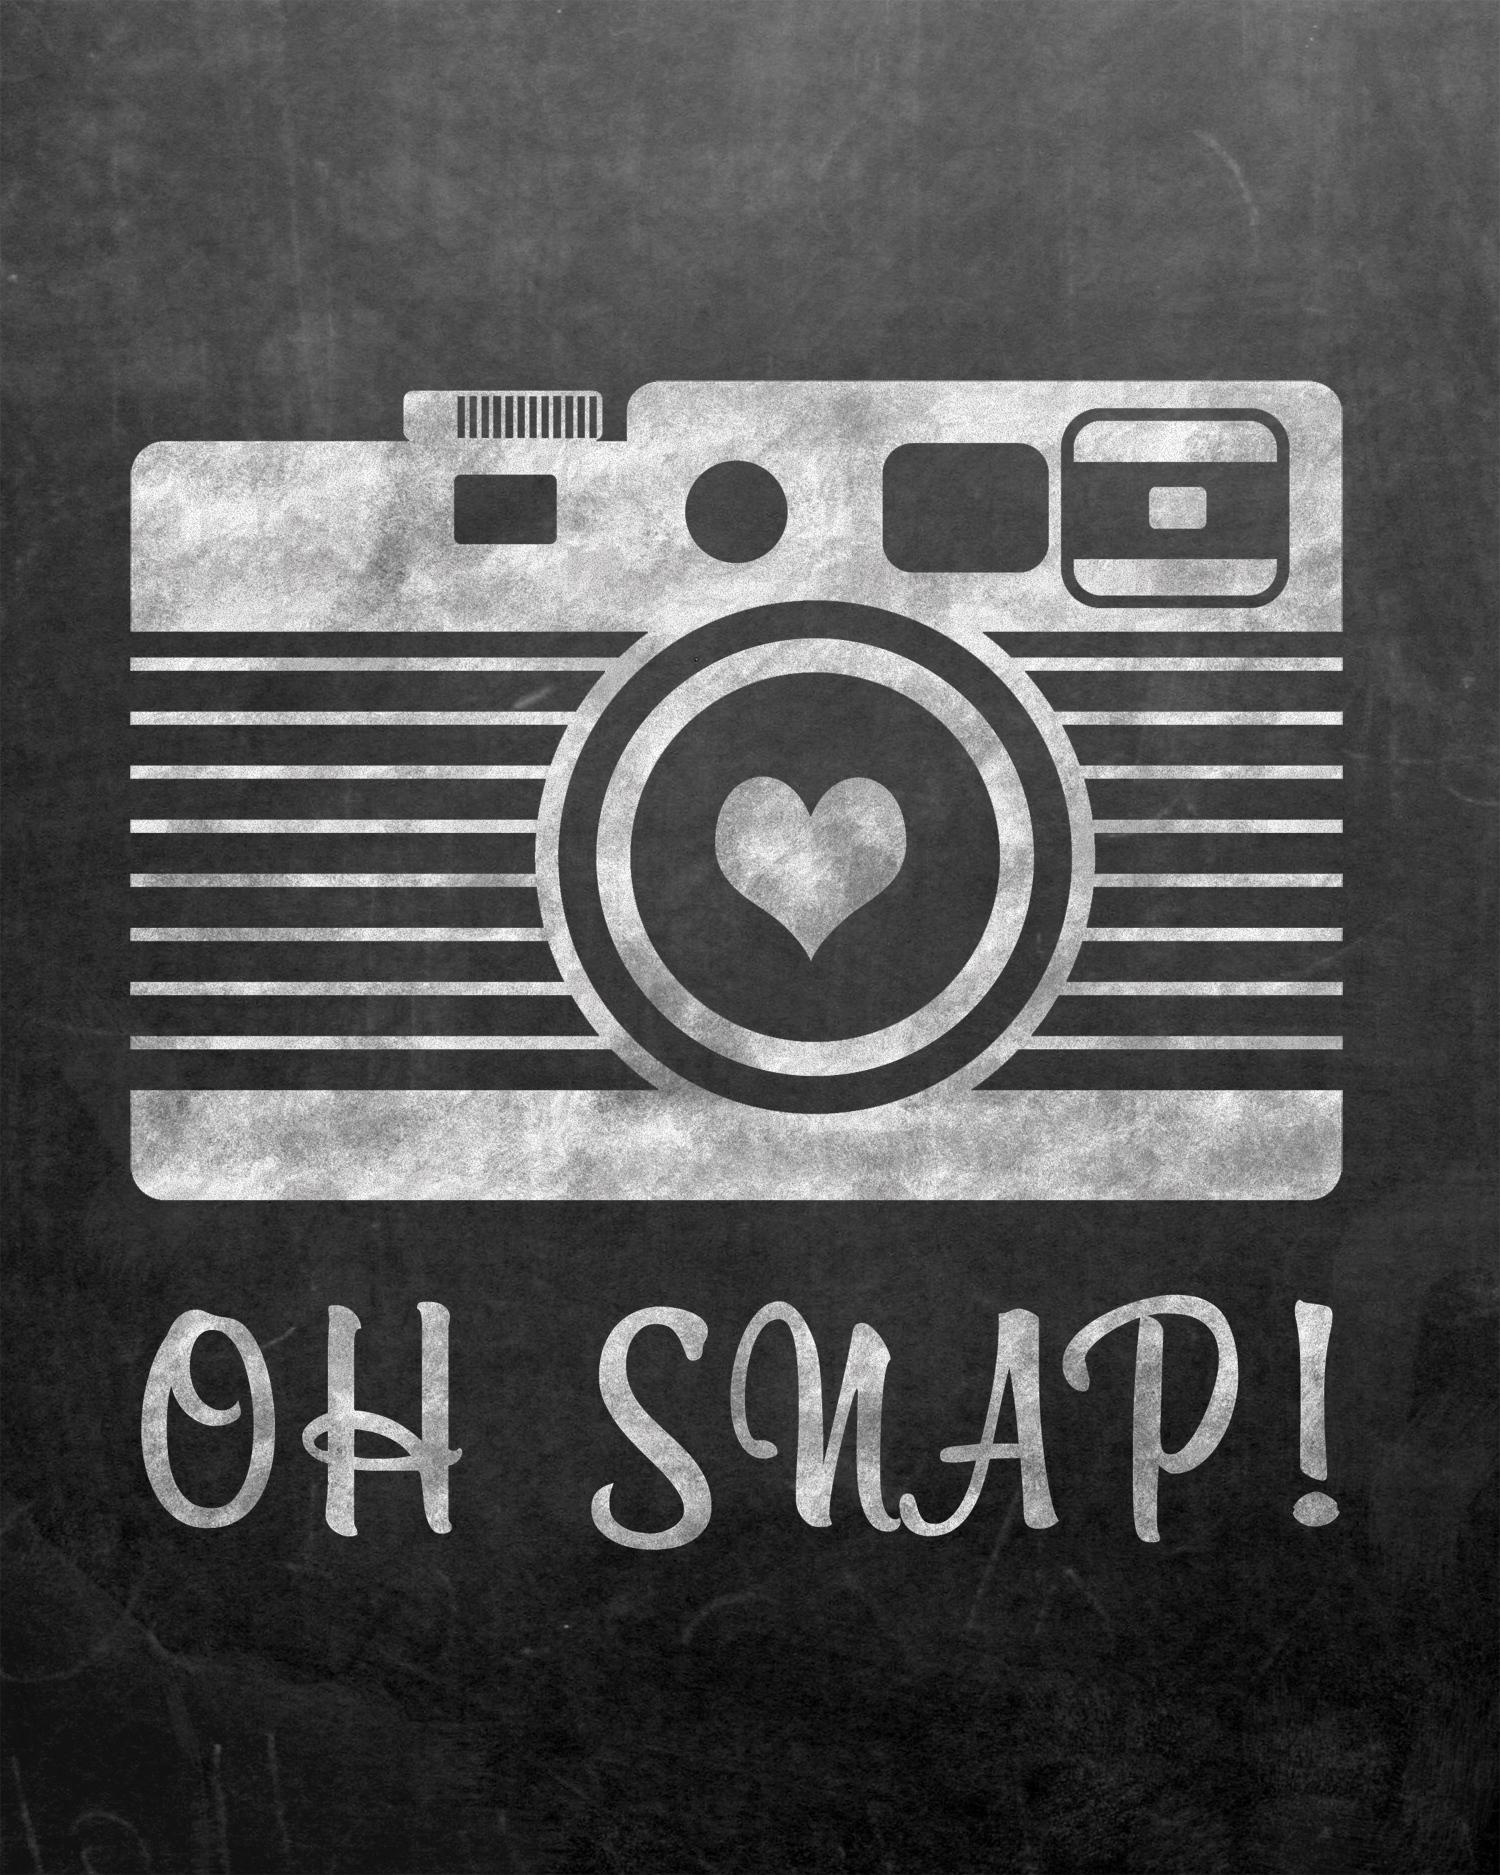 photo regarding Free Chalkboard Printable identified as Cost-free Oh Snap Chalkboard Printable - No. 2 Pencil